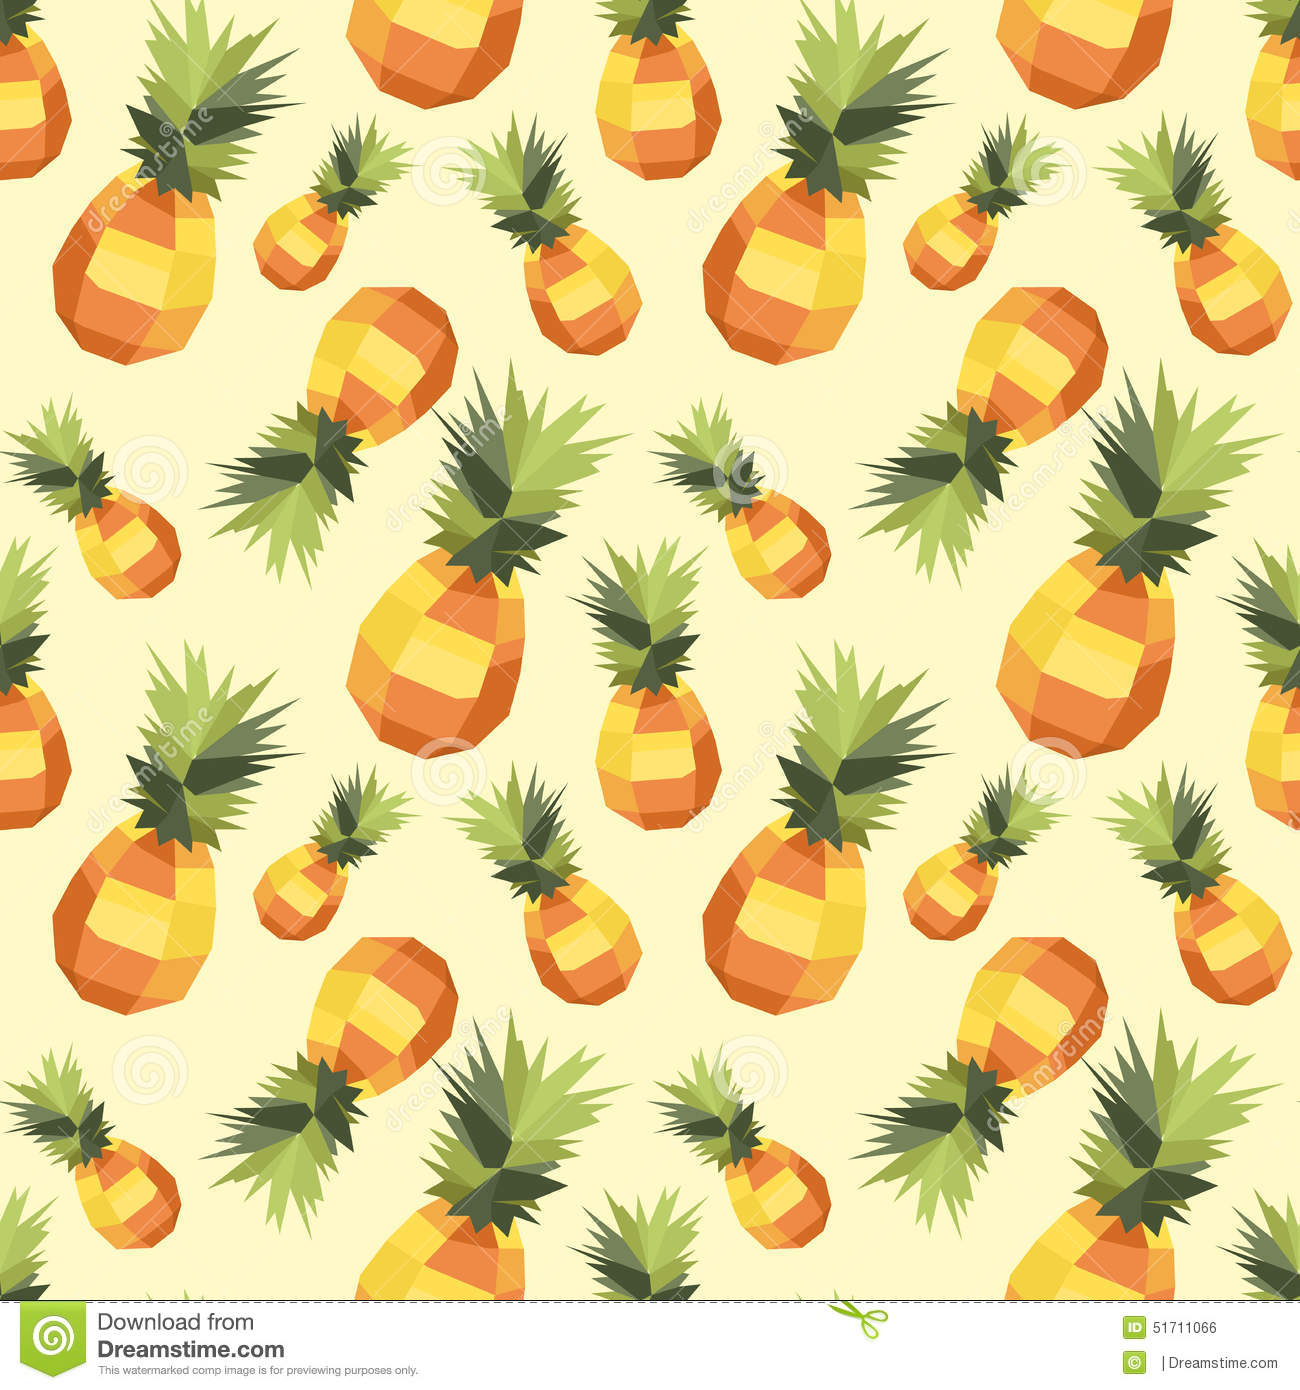 Vintage Polygon Pineapple Pattern Stock Vector - Image ...